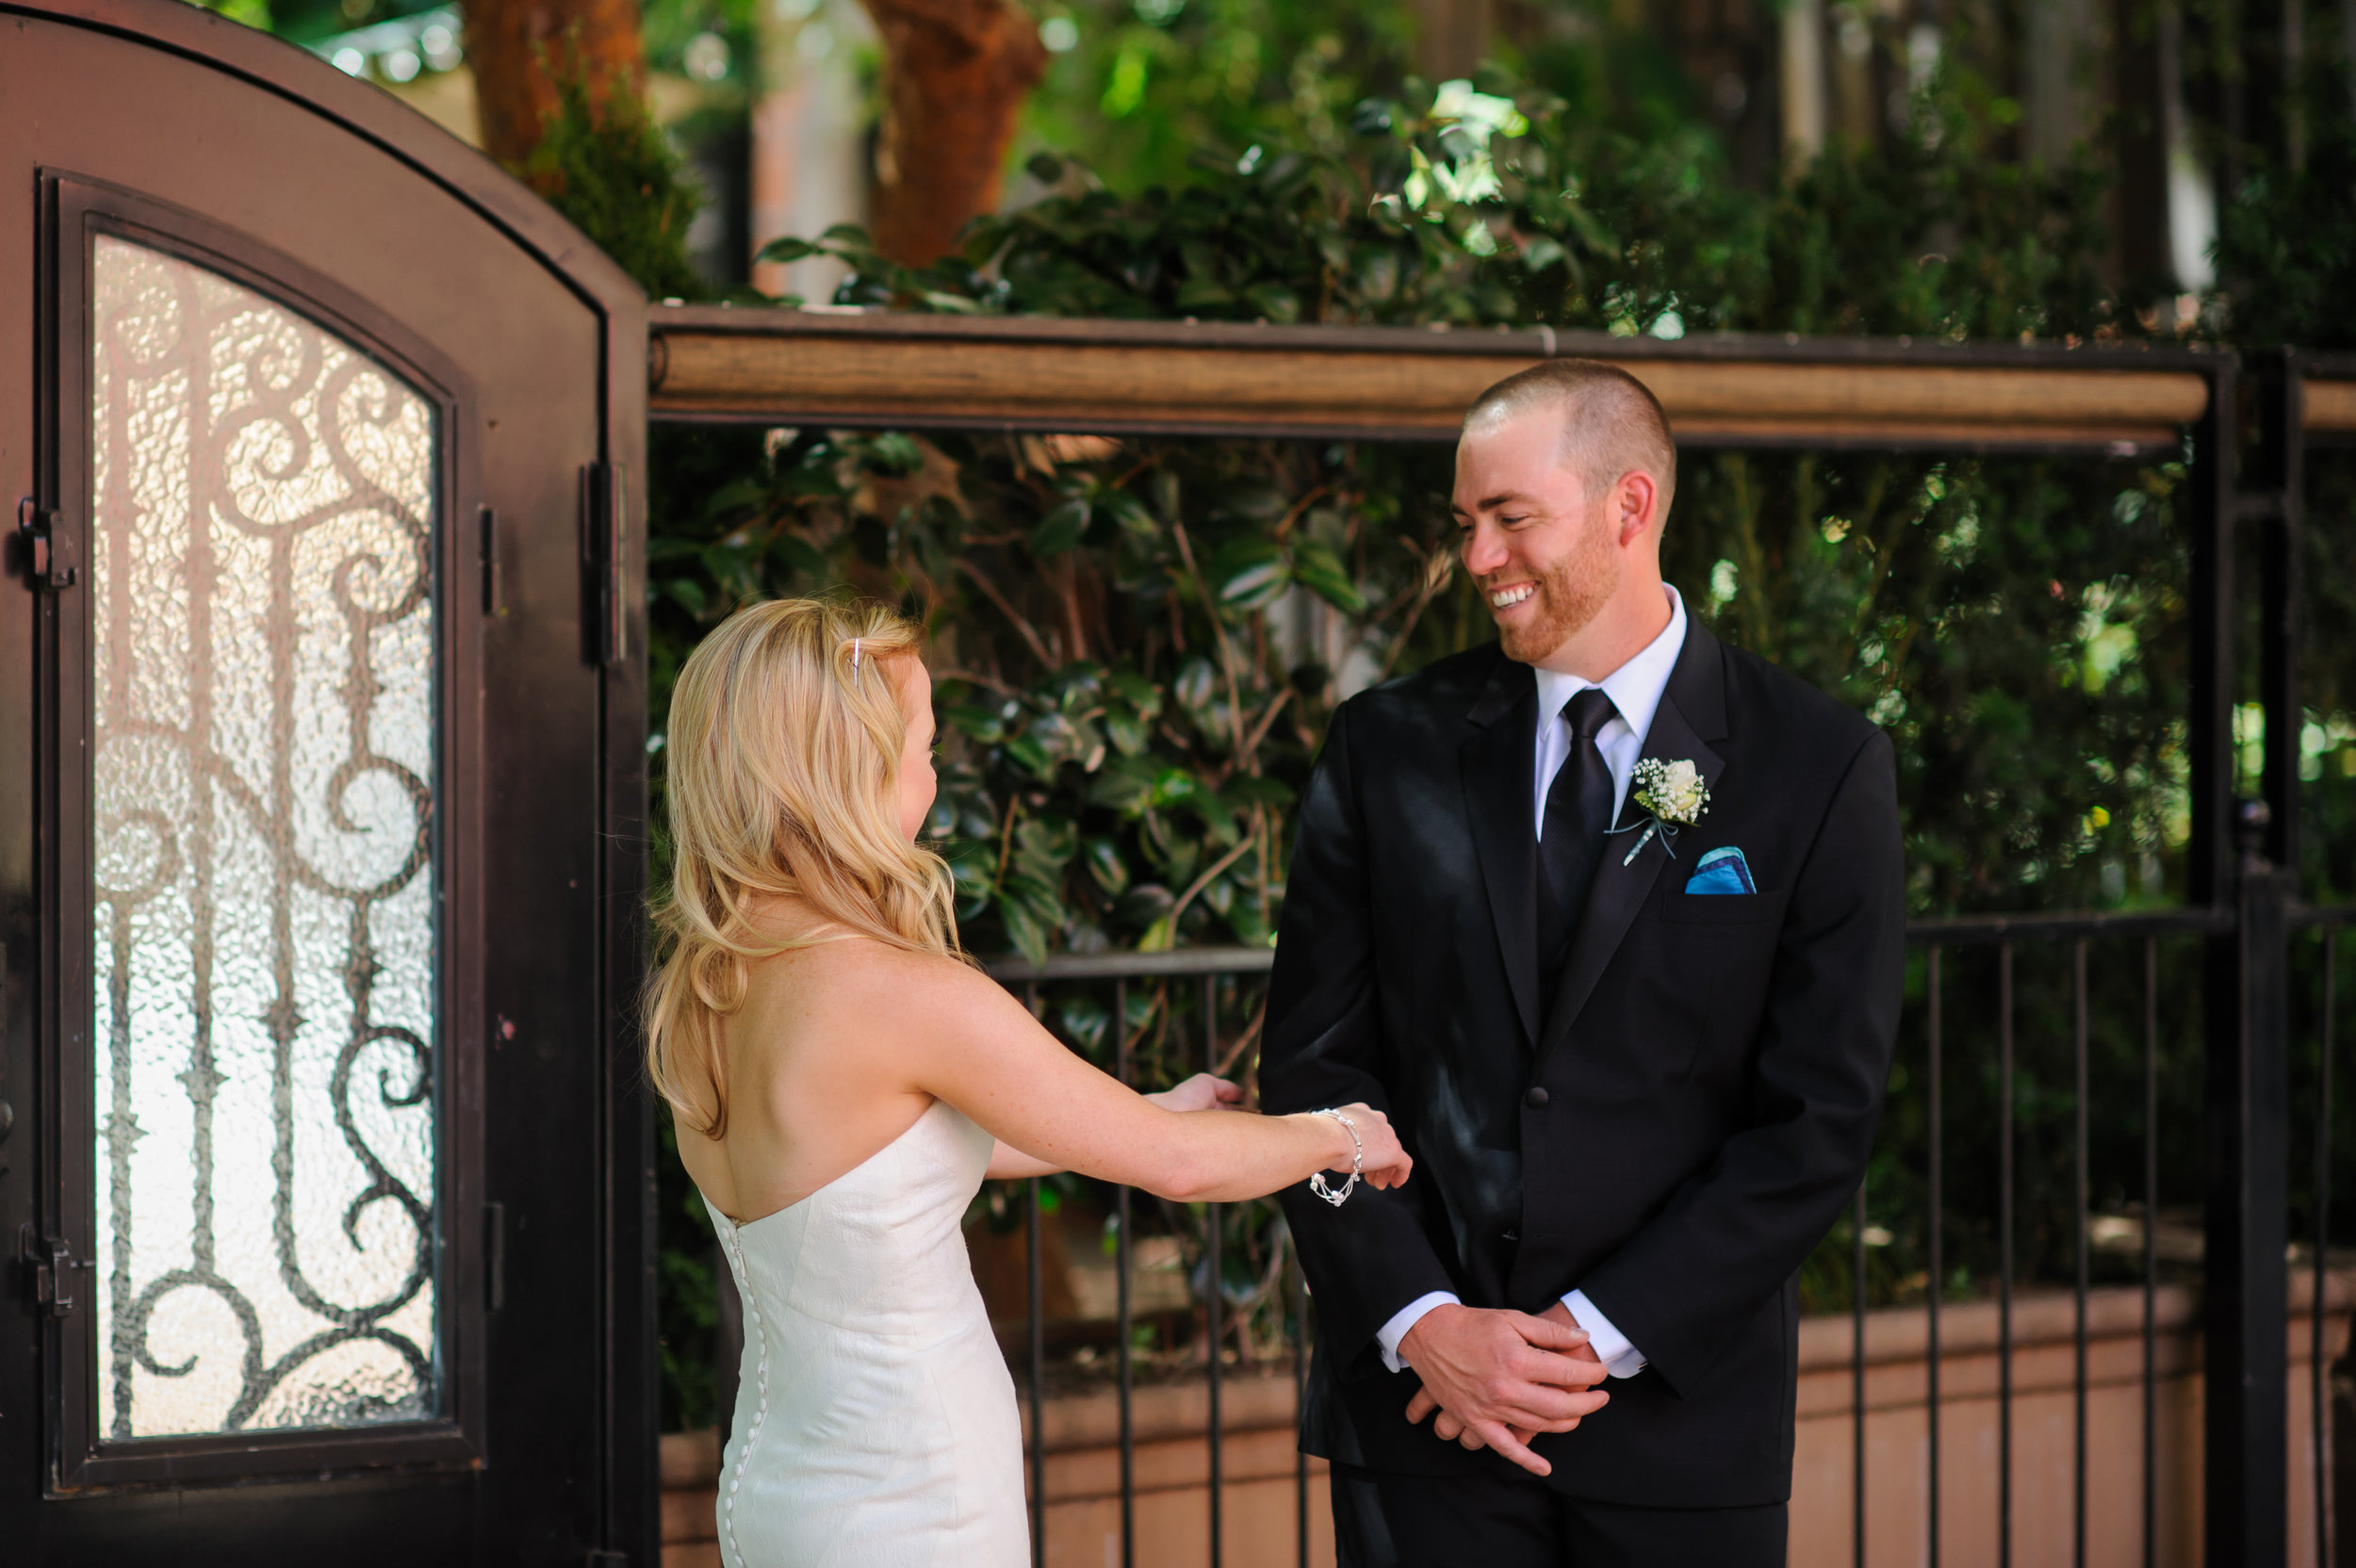 jenelle-brian-001-courtyard-d'oro-old-sacramento-wedding-photographer-katherine-nicole-photography013.JPG